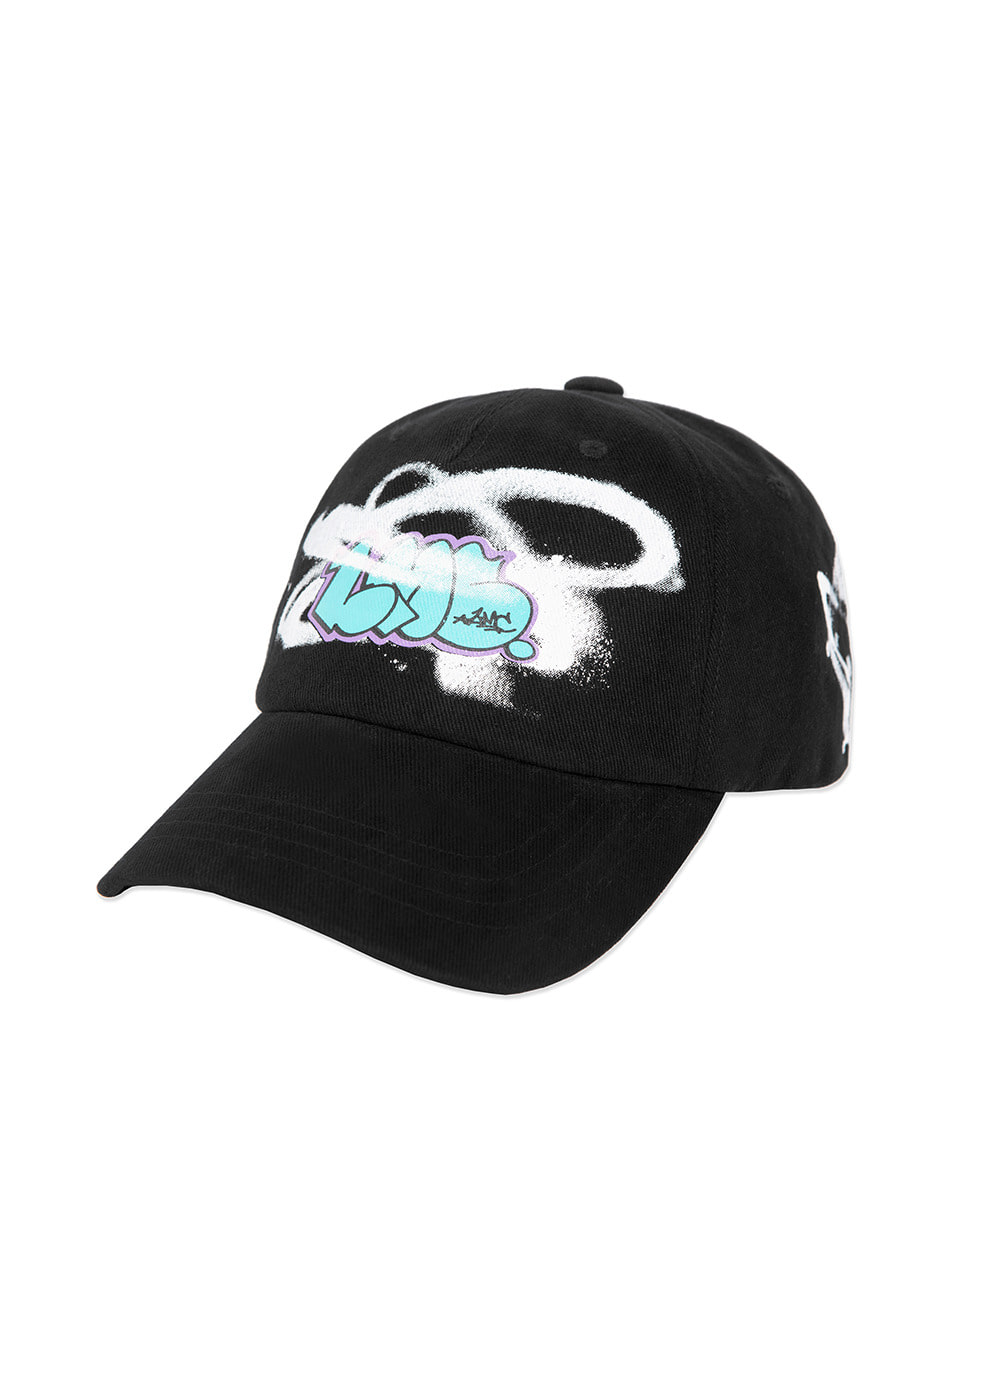 LMC GRAFFITI TRUCKER CAP black